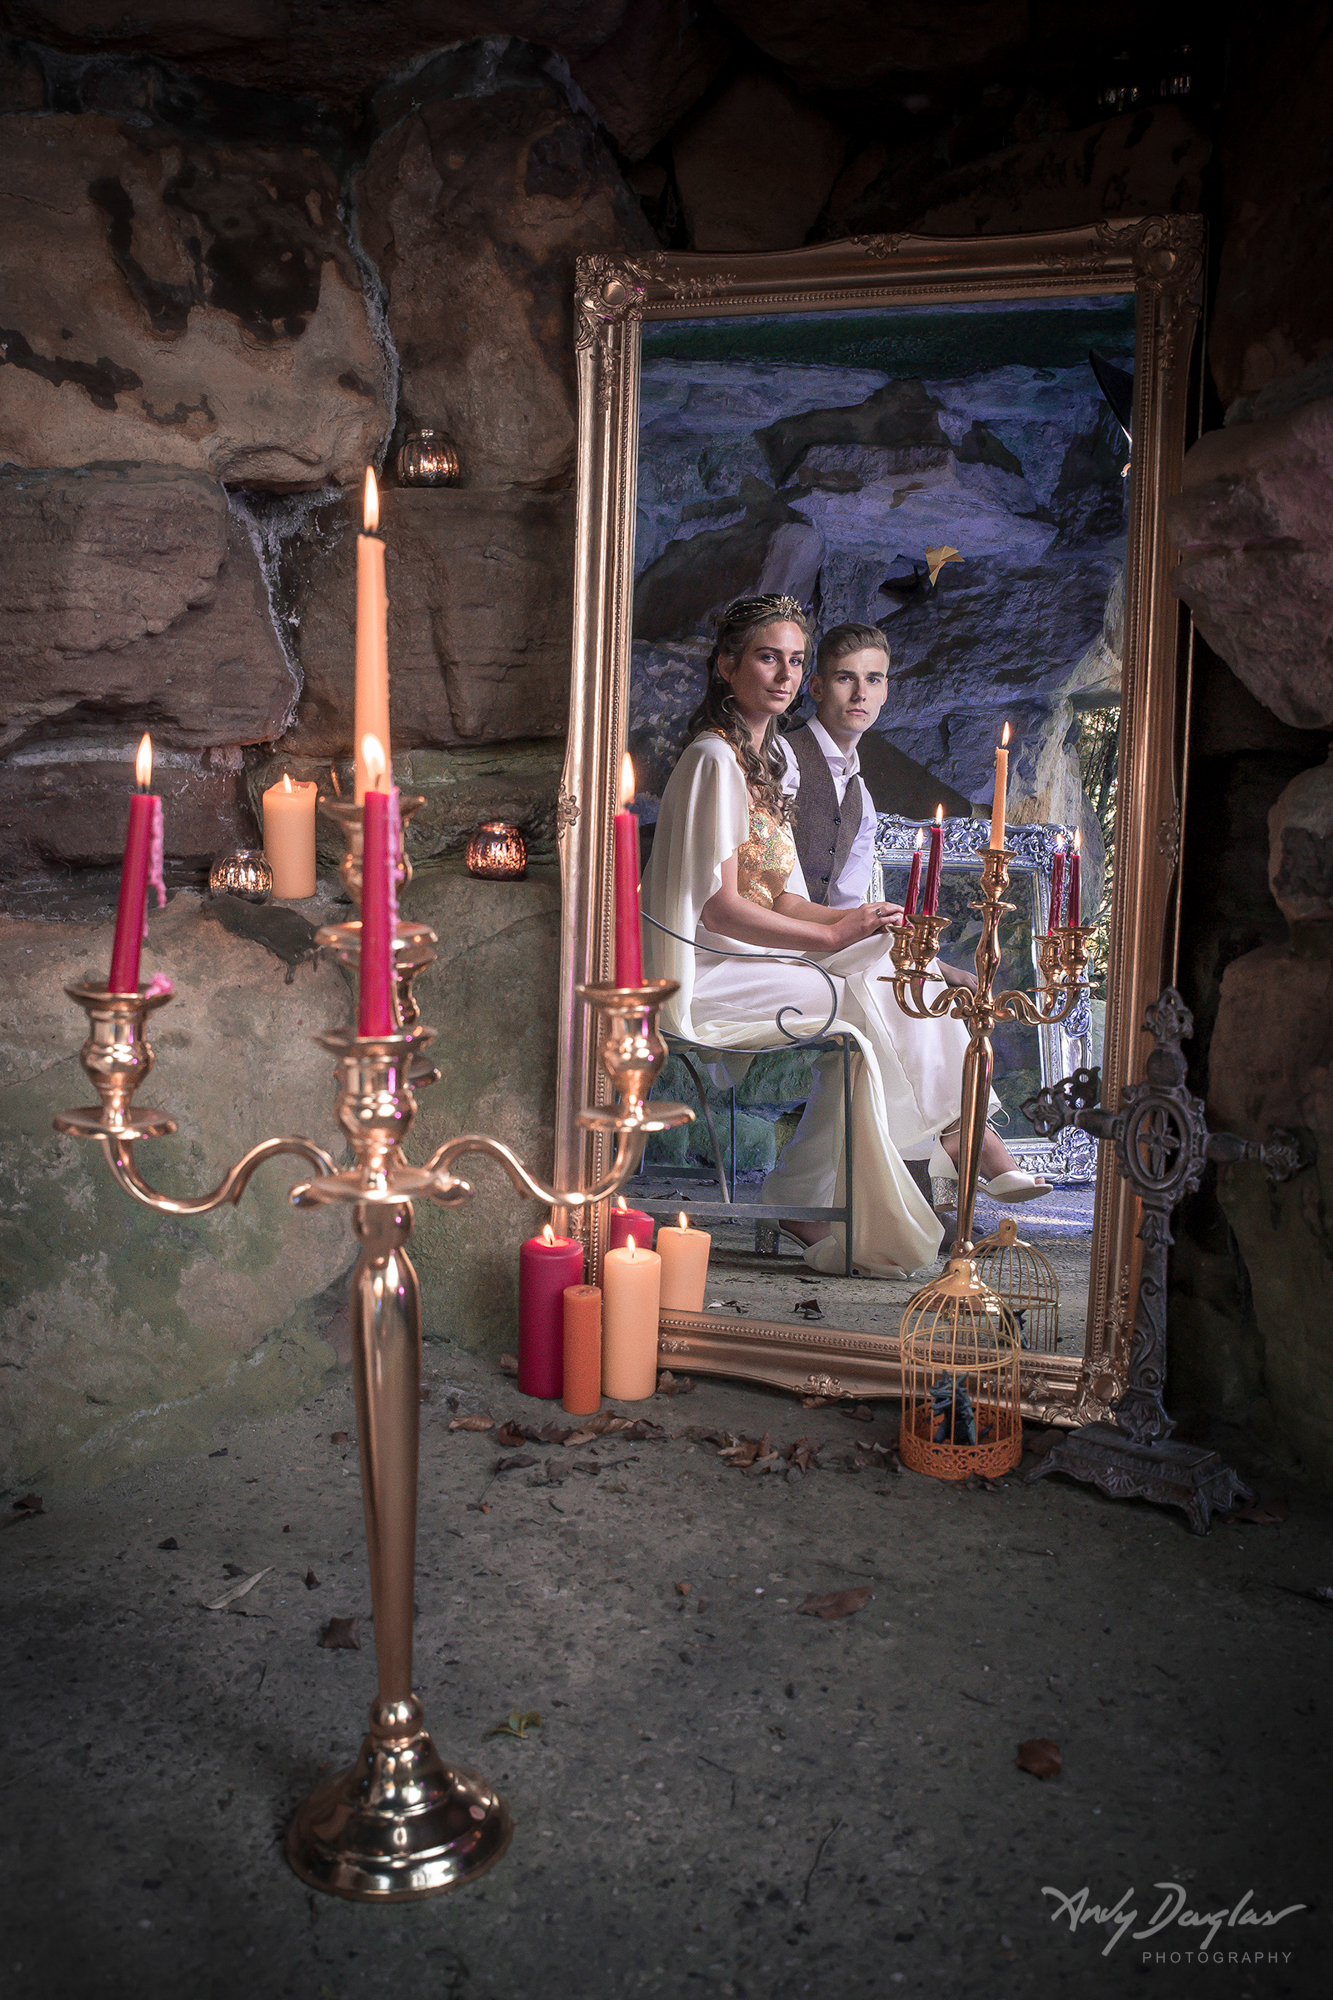 Game of thrones inspired wedding in the grotto